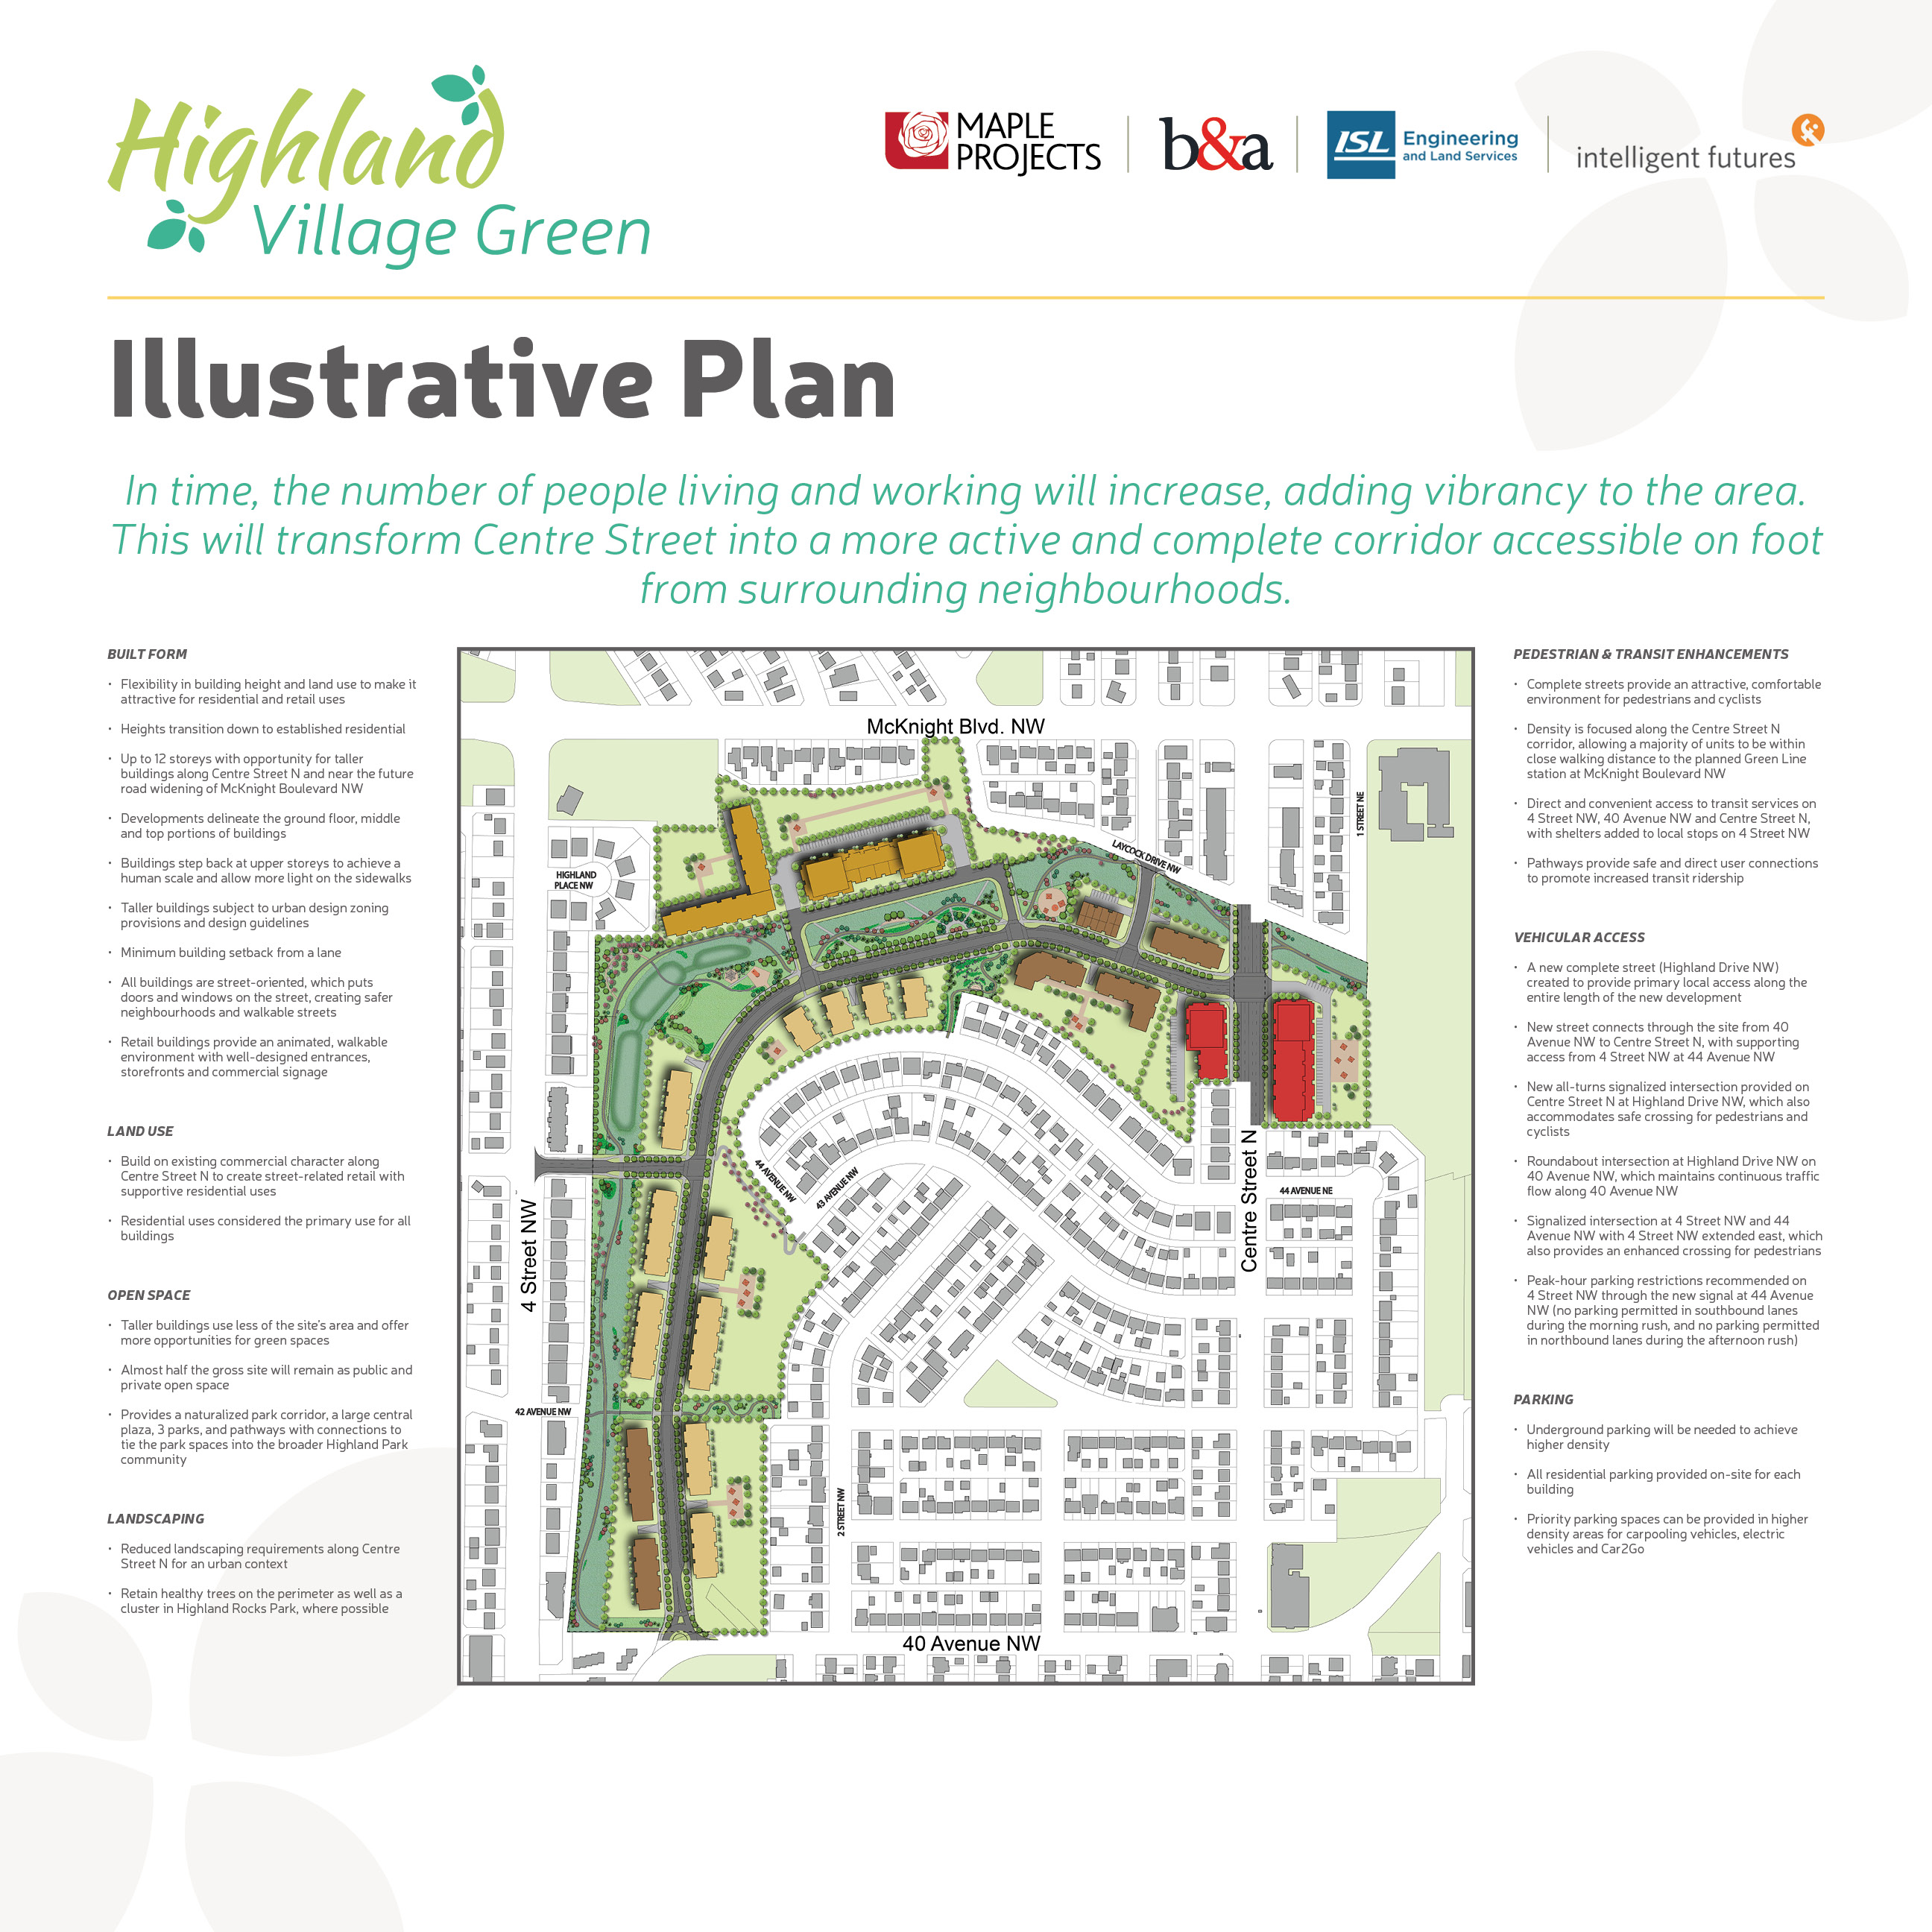 1564 - Highland Village Green - Open House March 2016 - Final Boards4